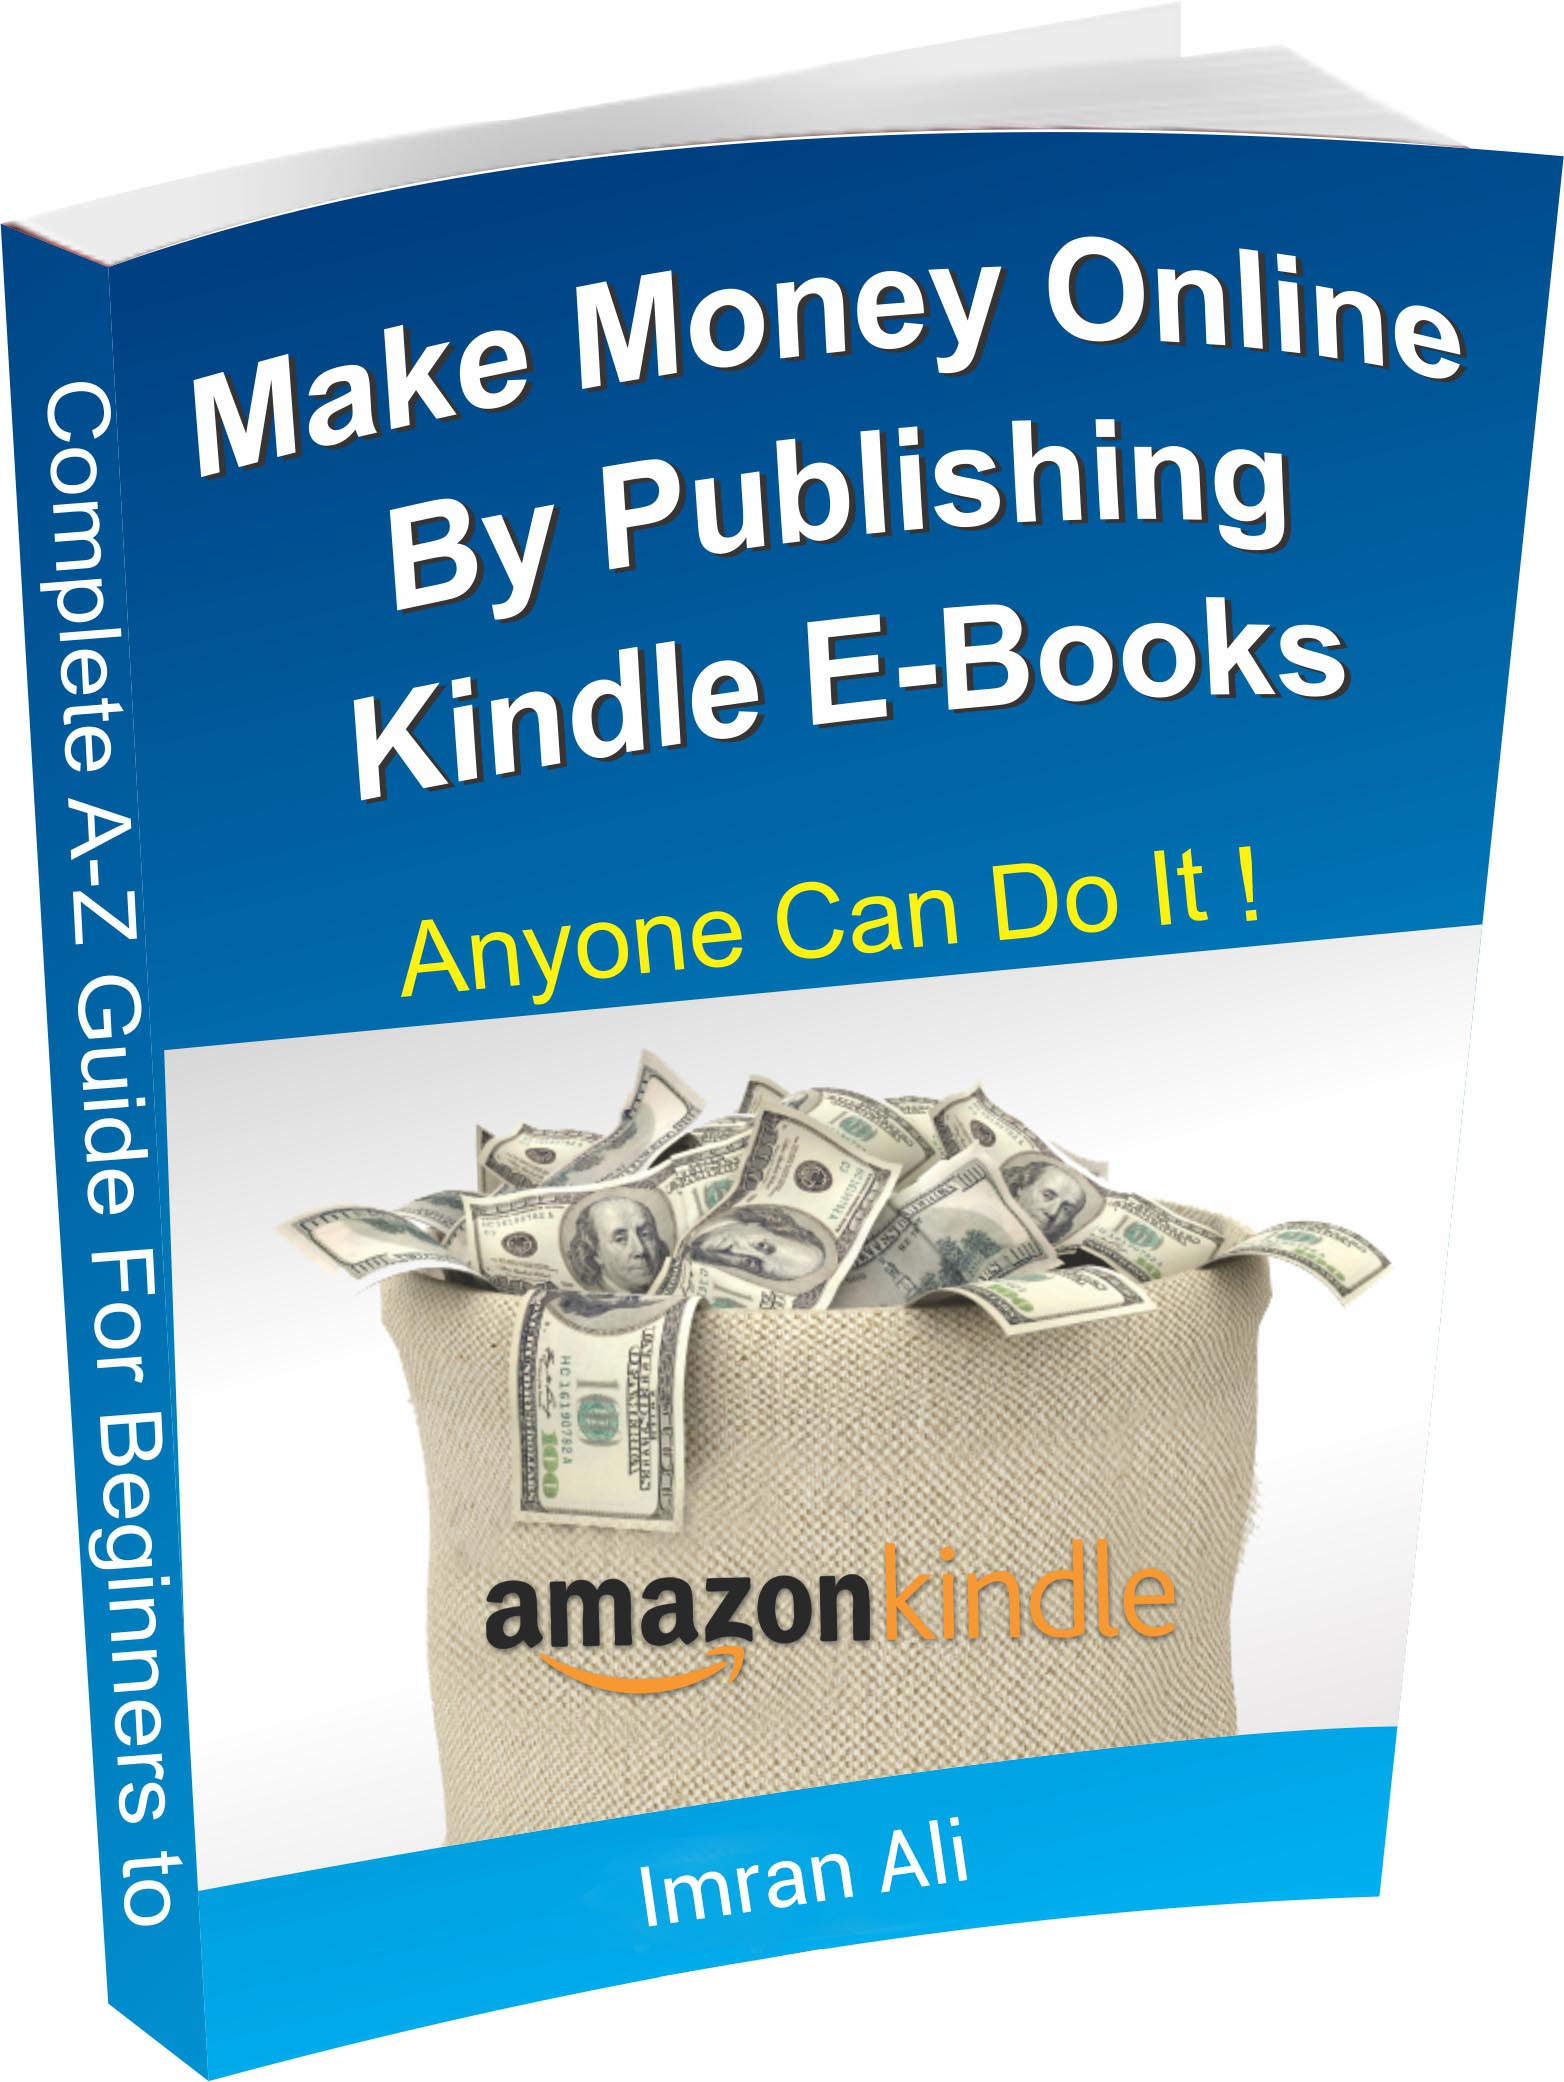 My book about making money by writing kindle books